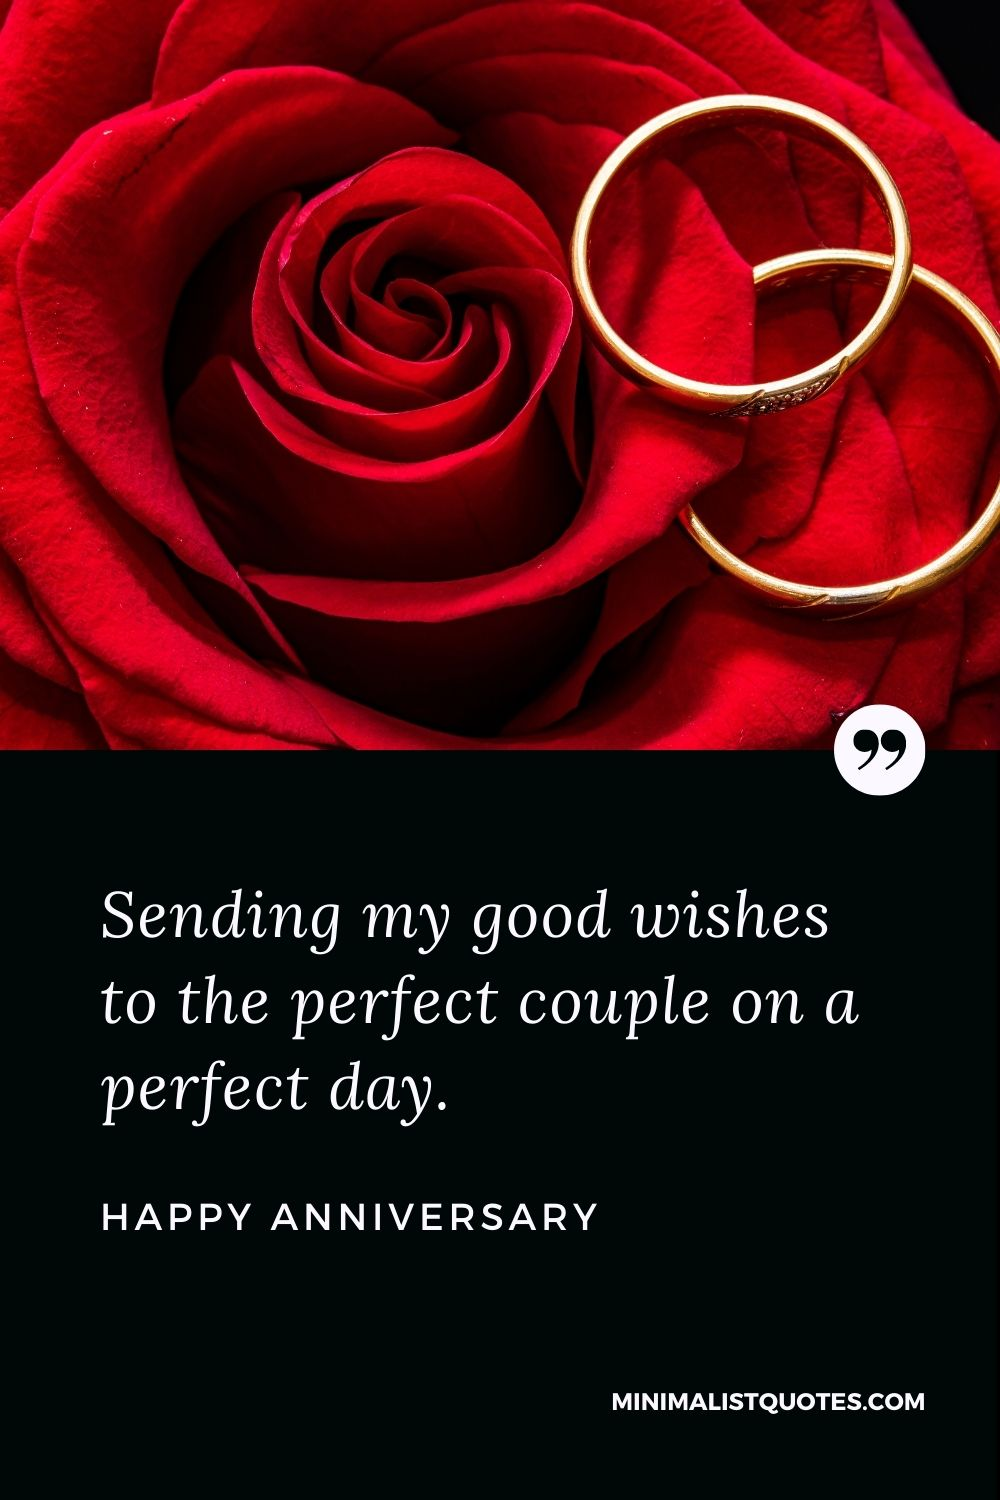 Happy Anniversary - Sending my good wishes to the perfect couple on a perfect day.